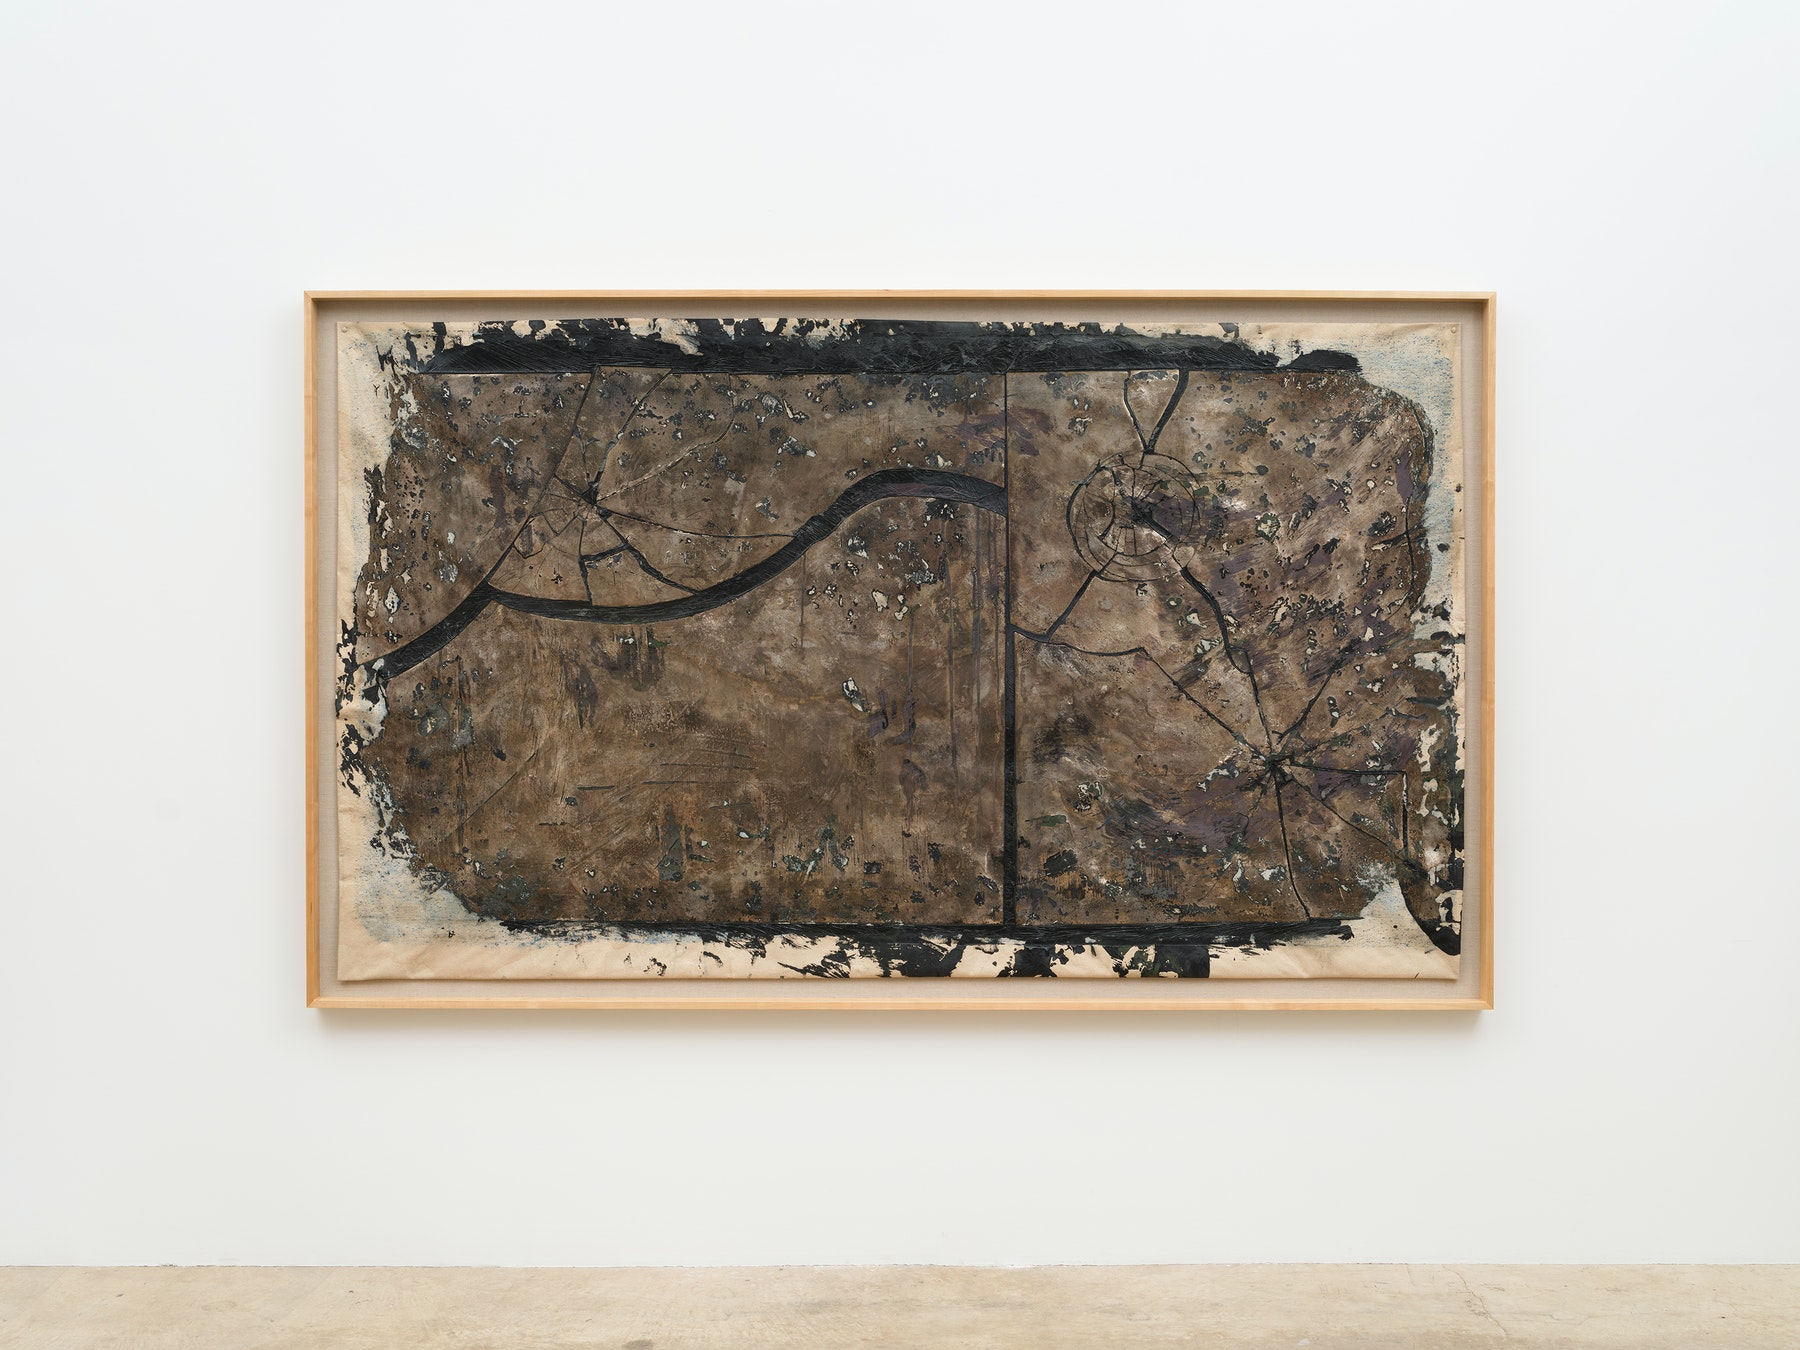 """Edgar Arceneaux """"Skinning the Mirror #11,"""" 2021 Silver nitrate, acrylic paint, and glass on canvas 65 ¹⁄₂"""" x 9' ¹⁄₂"""" x 3"""" [HxWxD] (166.37 x 275.59 x 7.62 cm) framed; 61"""" x 93"""" [HxW] (154.94 x 236.22 cm) unframed Inventory #ARC643 Courtesy of the artist and Vielmetter Los Angeles Photo credit: Jeff McLane / Xiaoyue Zhang"""